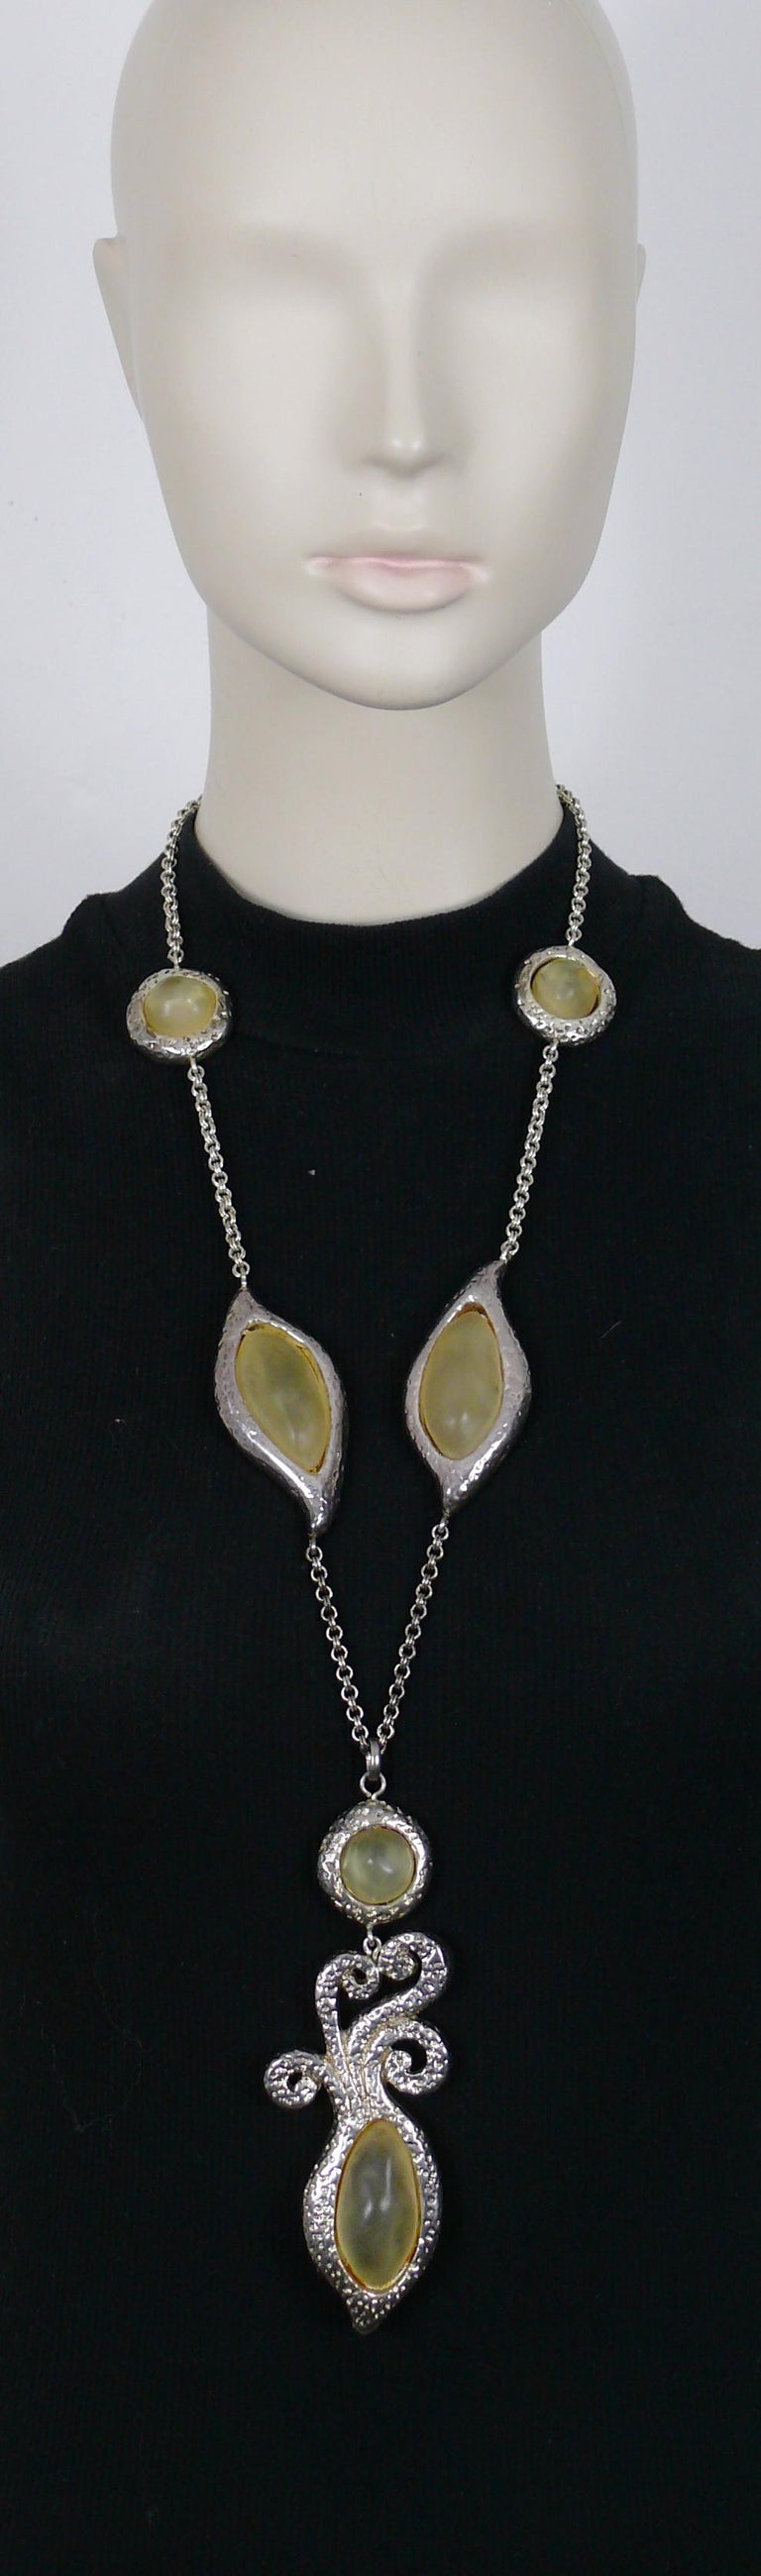 DOMINIQUE DENAIVE vintage textured silver toned necklace and dangling earrings (clip-on) set embellished with freeform shape yellow resin cabochons.  NECKLACE features a silver toned link chain, freeform shape textured links embellished with frosted